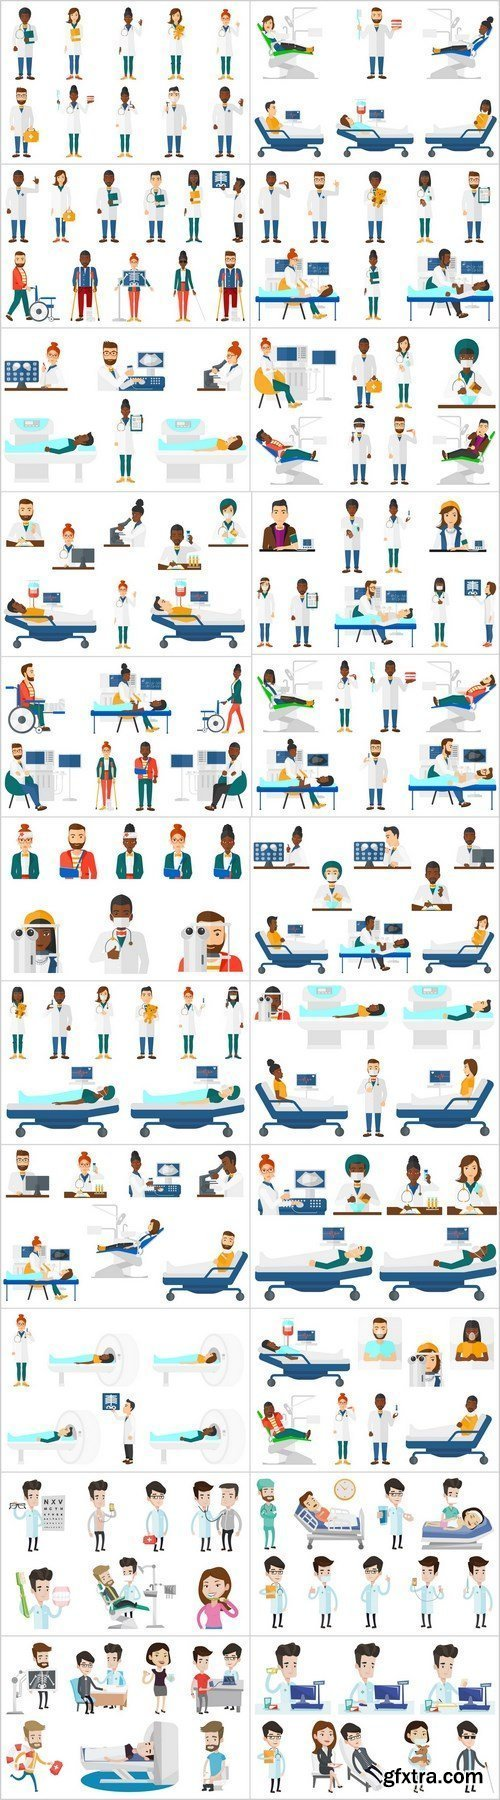 Doctor characters and patients - 24xEPS Vector Stock